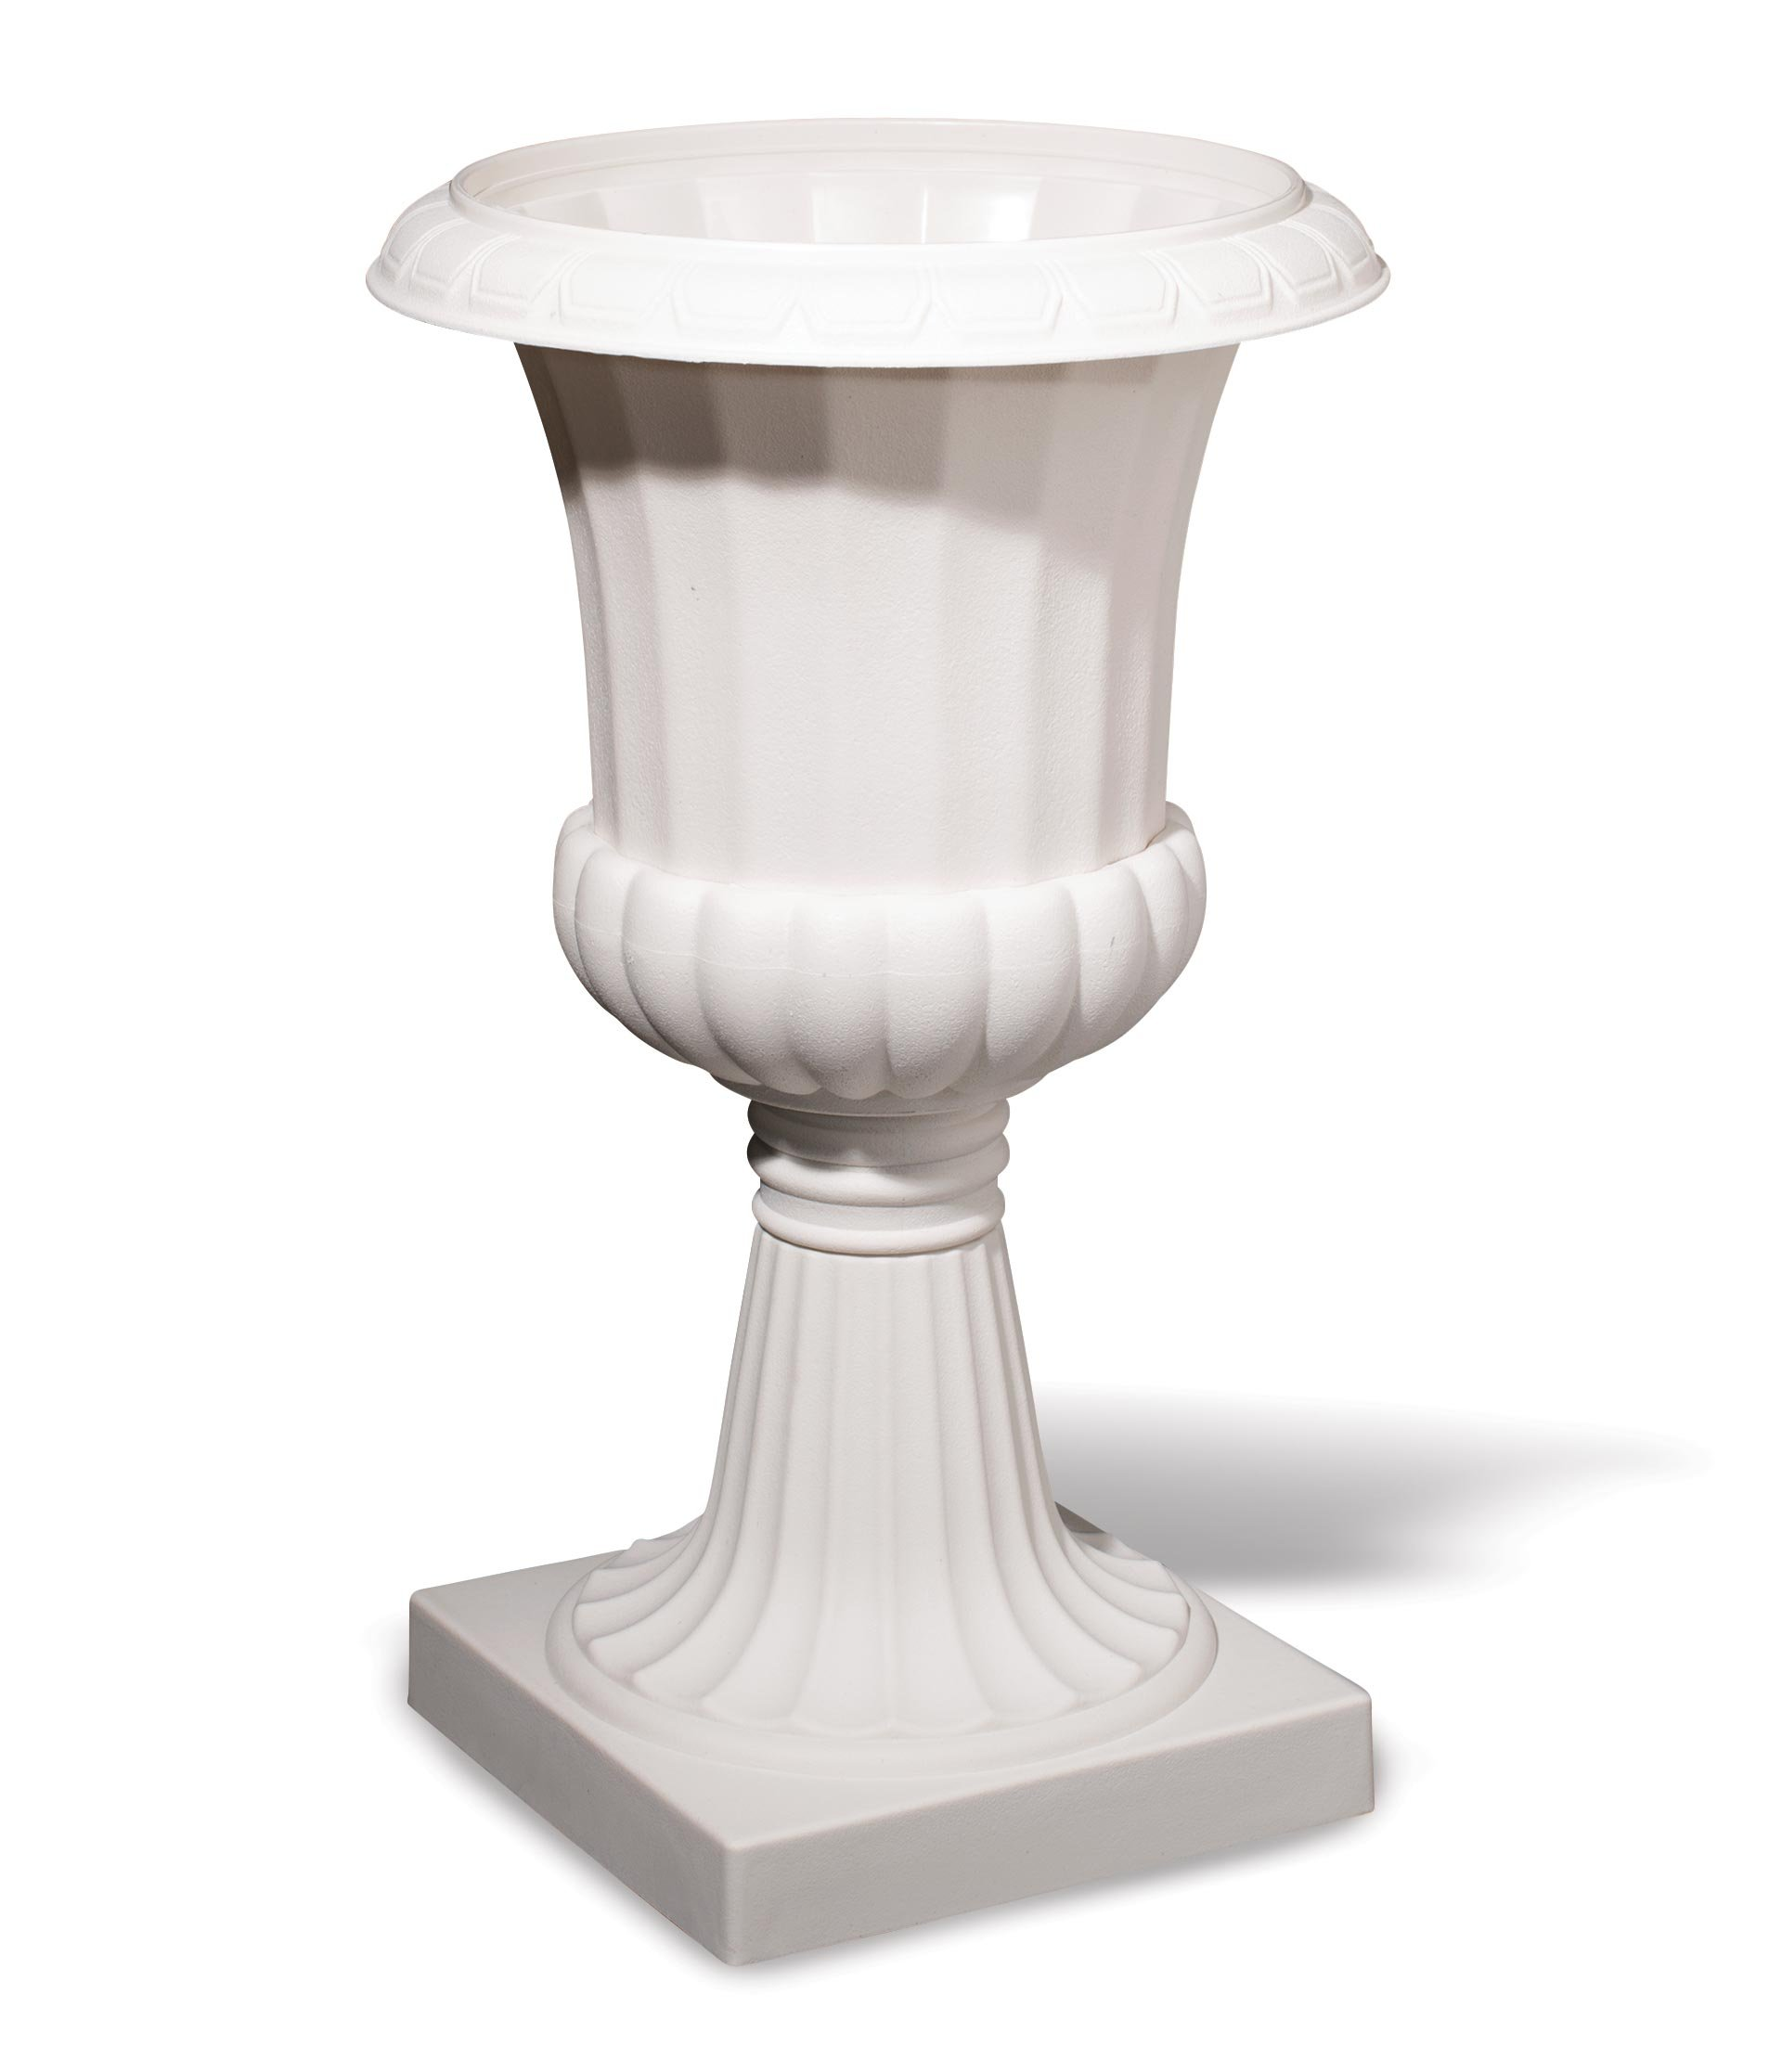 TCDesignerProducts Classic White Decorative Plastic Urn Planter, 19 Inches High Prom Decoration by TCDesignerProducts